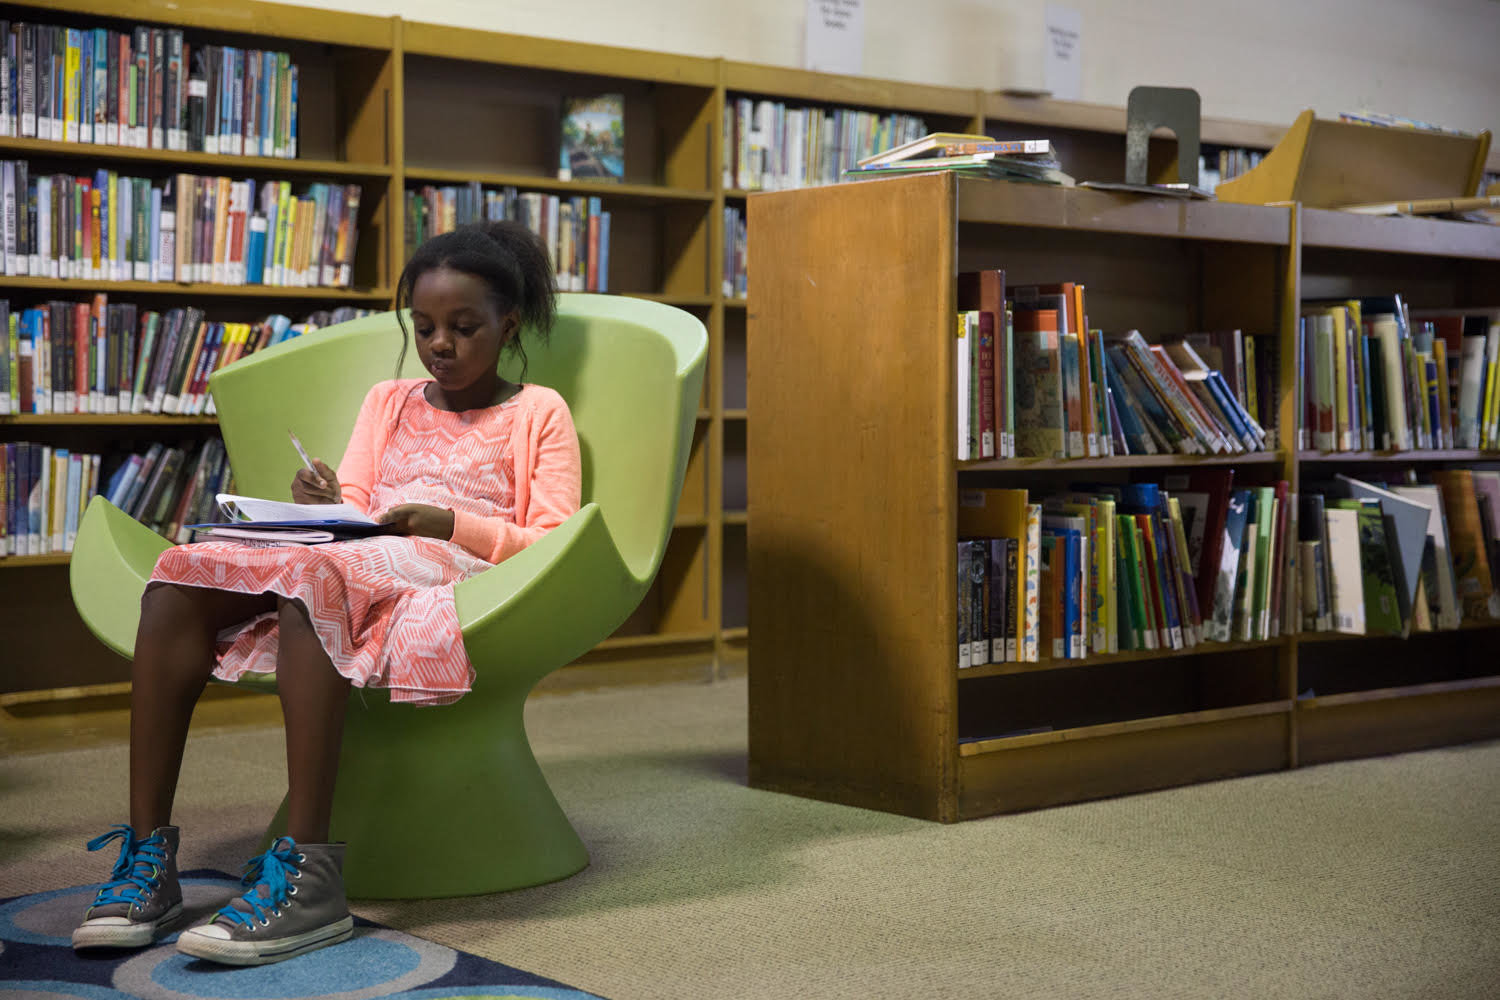 Libraries across the city have closed in order to mitigate the spread of the novel coronavirus, but former patrons of branches like the Riverdale Library can continue enjoying the books with NYPL's e-reader app SimplyE.